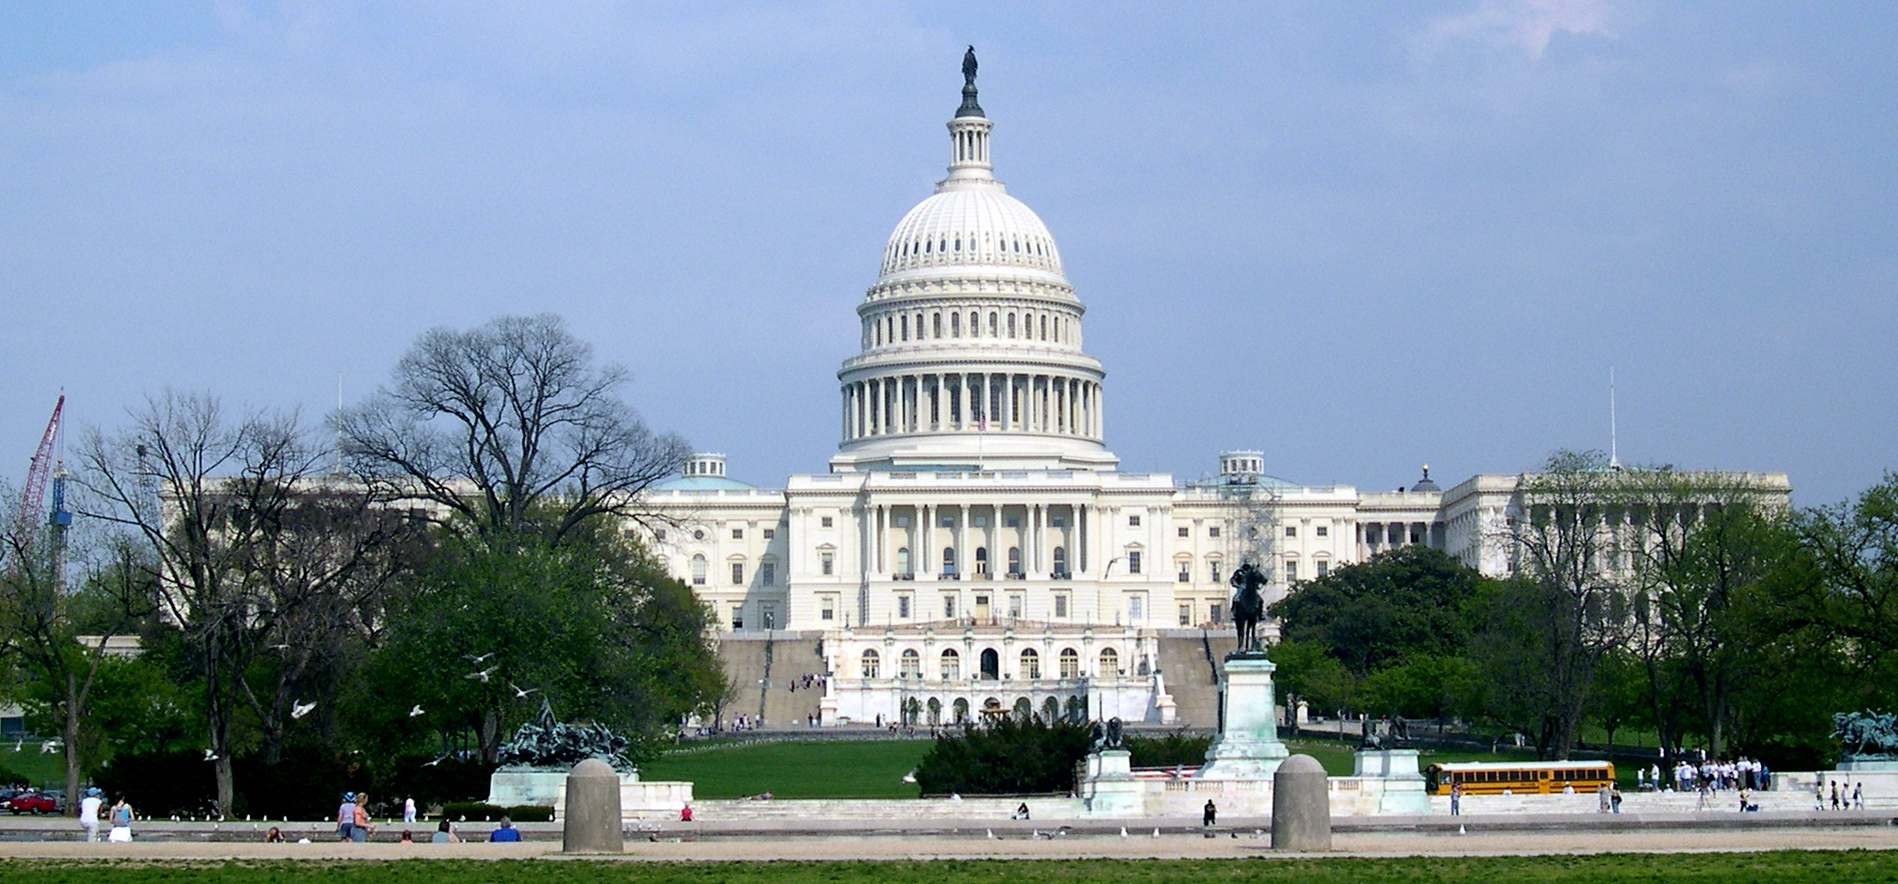 Washington D.C. - The Mall - Capitol Building 2